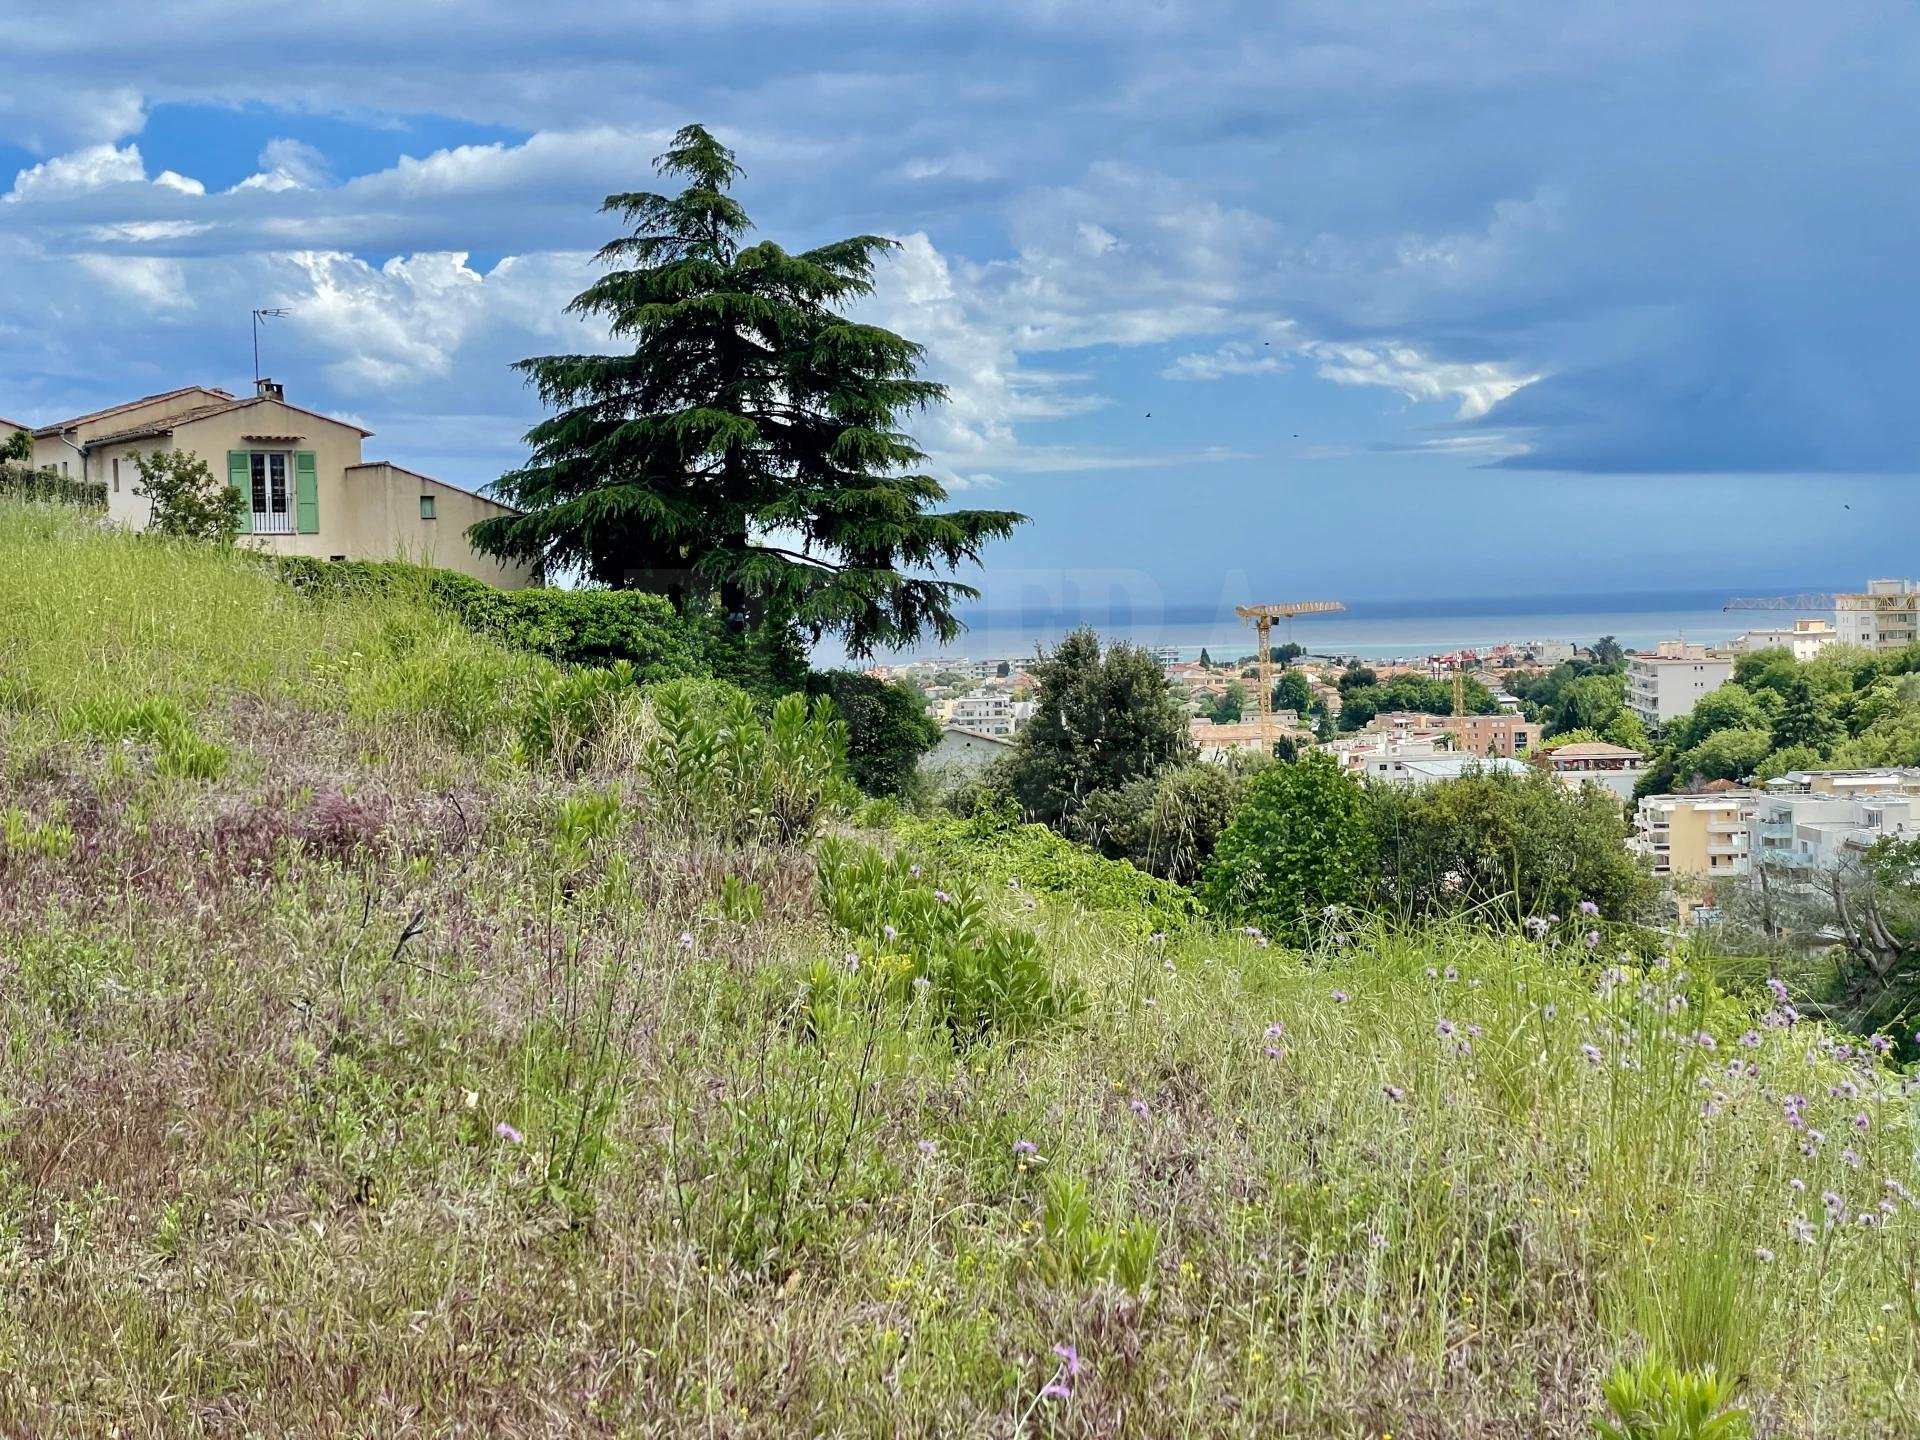 Building plot of 2304 m², nice sea view in Cagnes-sur-Mer